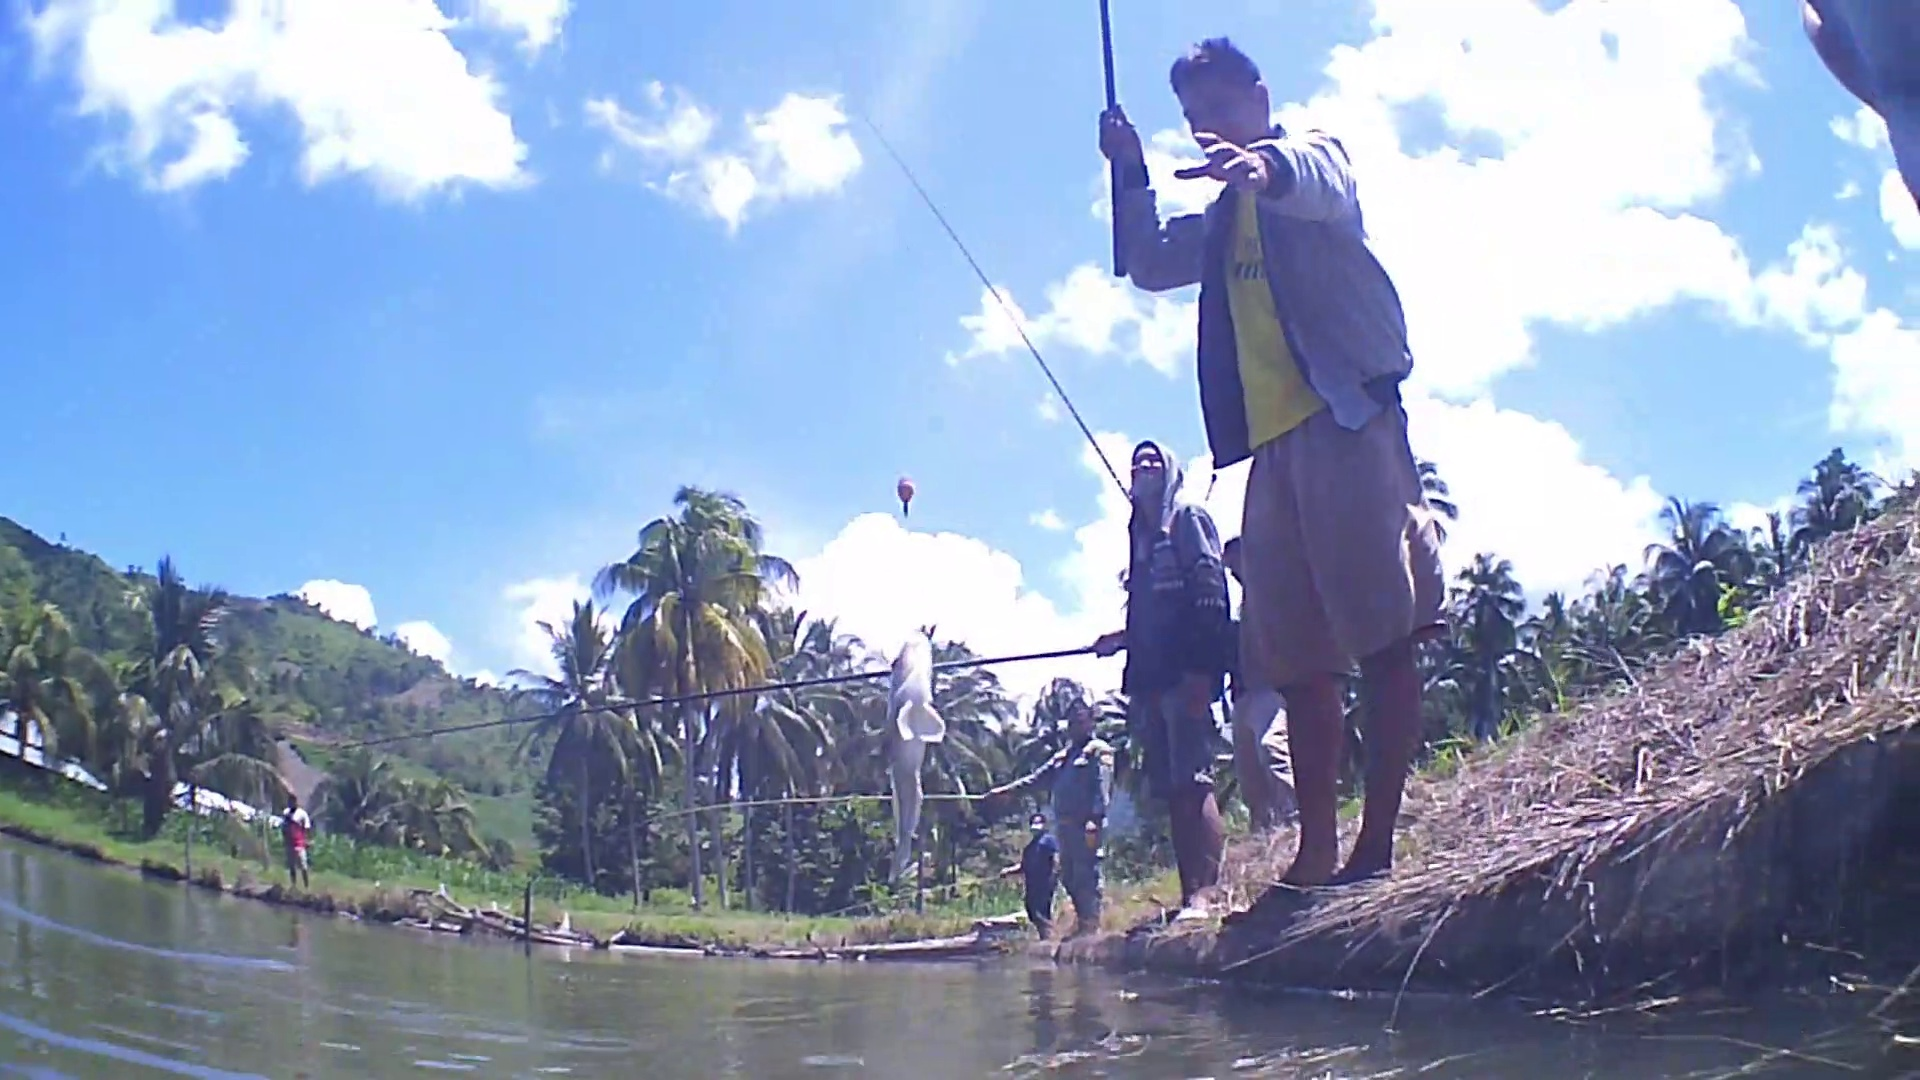 Fishing in a murky pond can get big and many fish | Mancing Mania